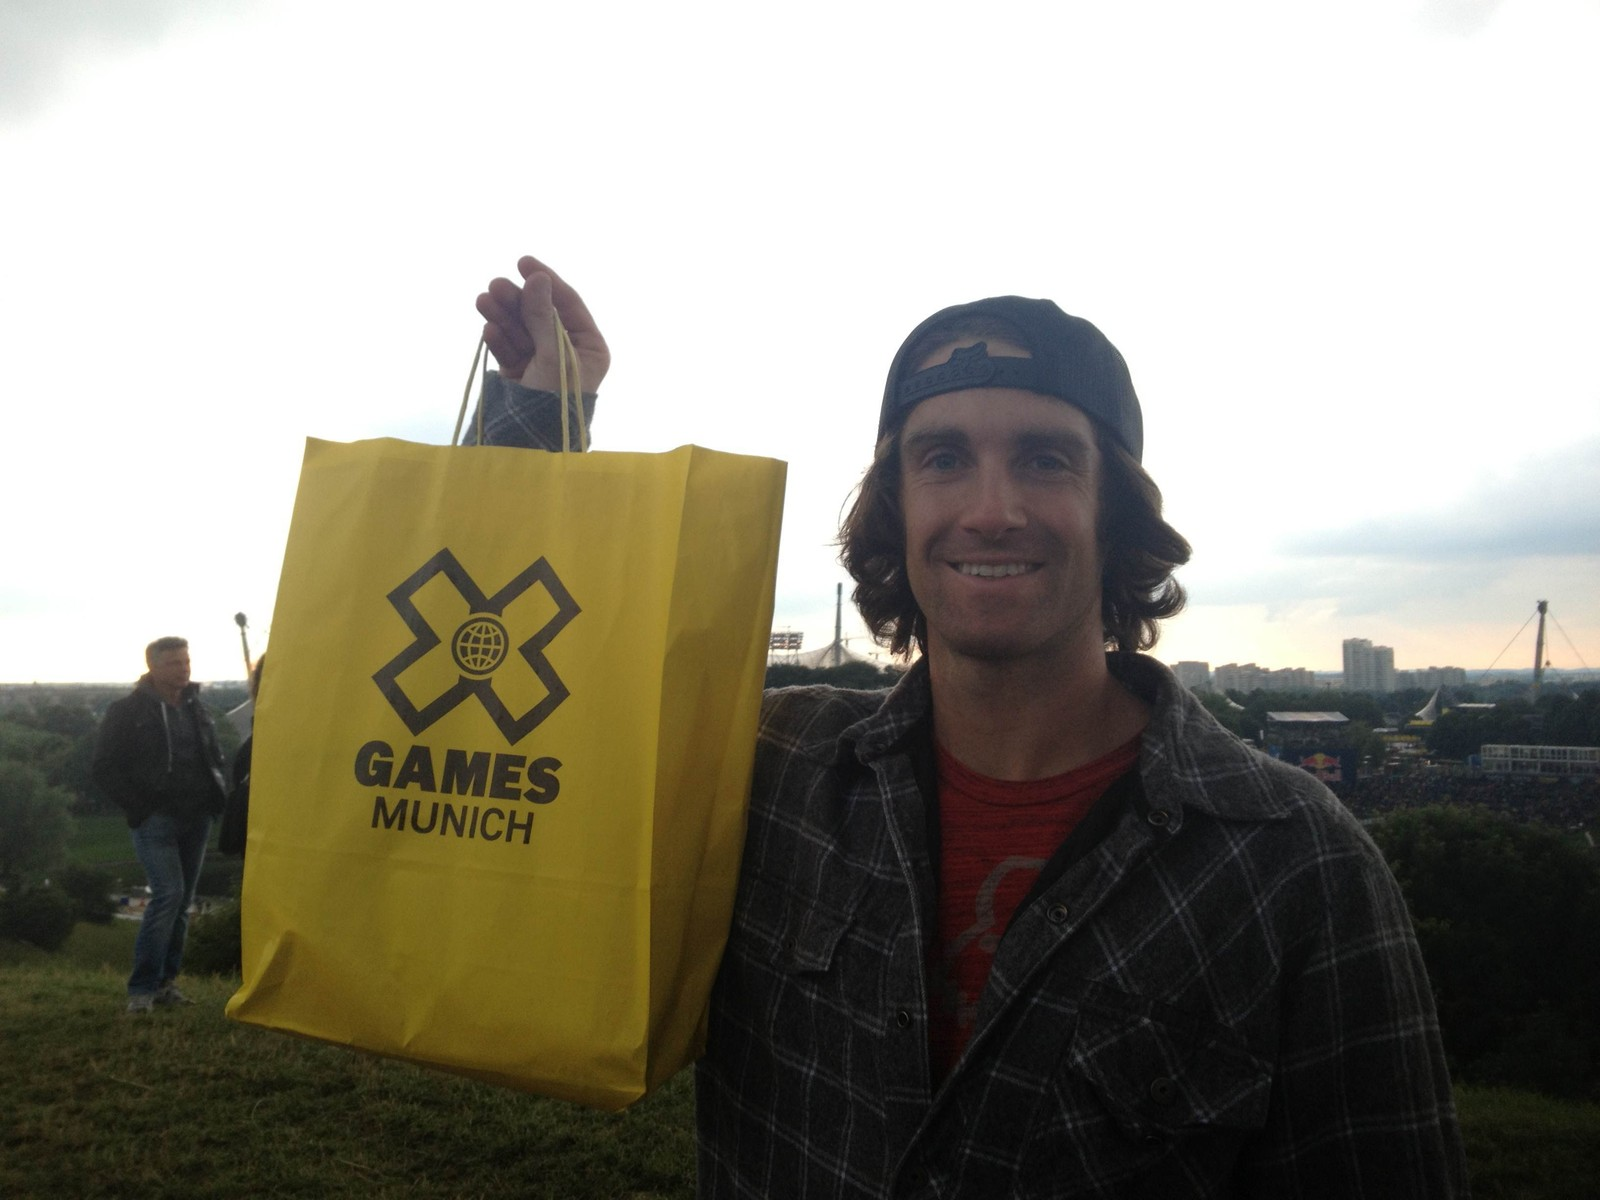 Cam Talks Talks About 2013 X Games MTB Slopestyle - All Things X-Games Munich Slopestyle - Mountain Biking Pictures - Vital MTB